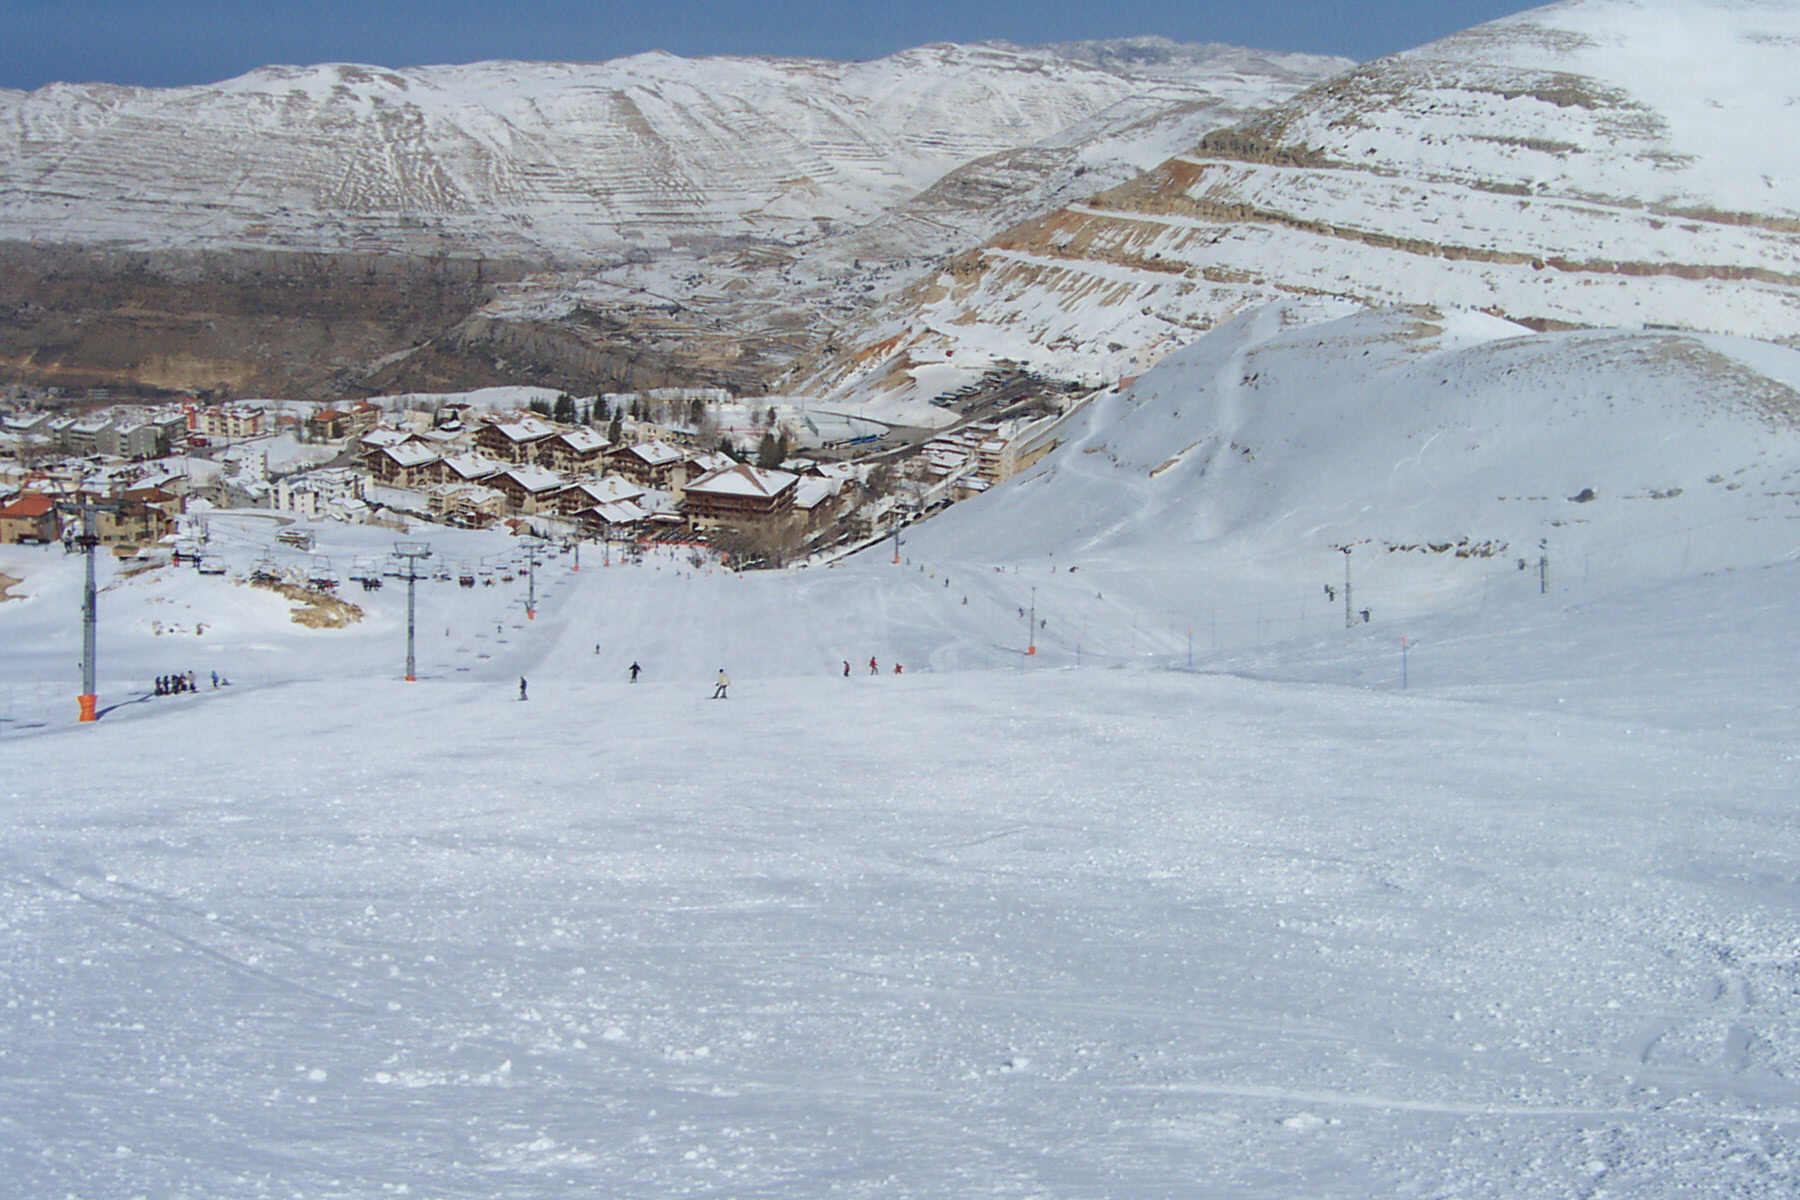 View from the refuge slope towards the Intercontinental Mountain Resort and Spa at Faraya Mzaar, Lebanon